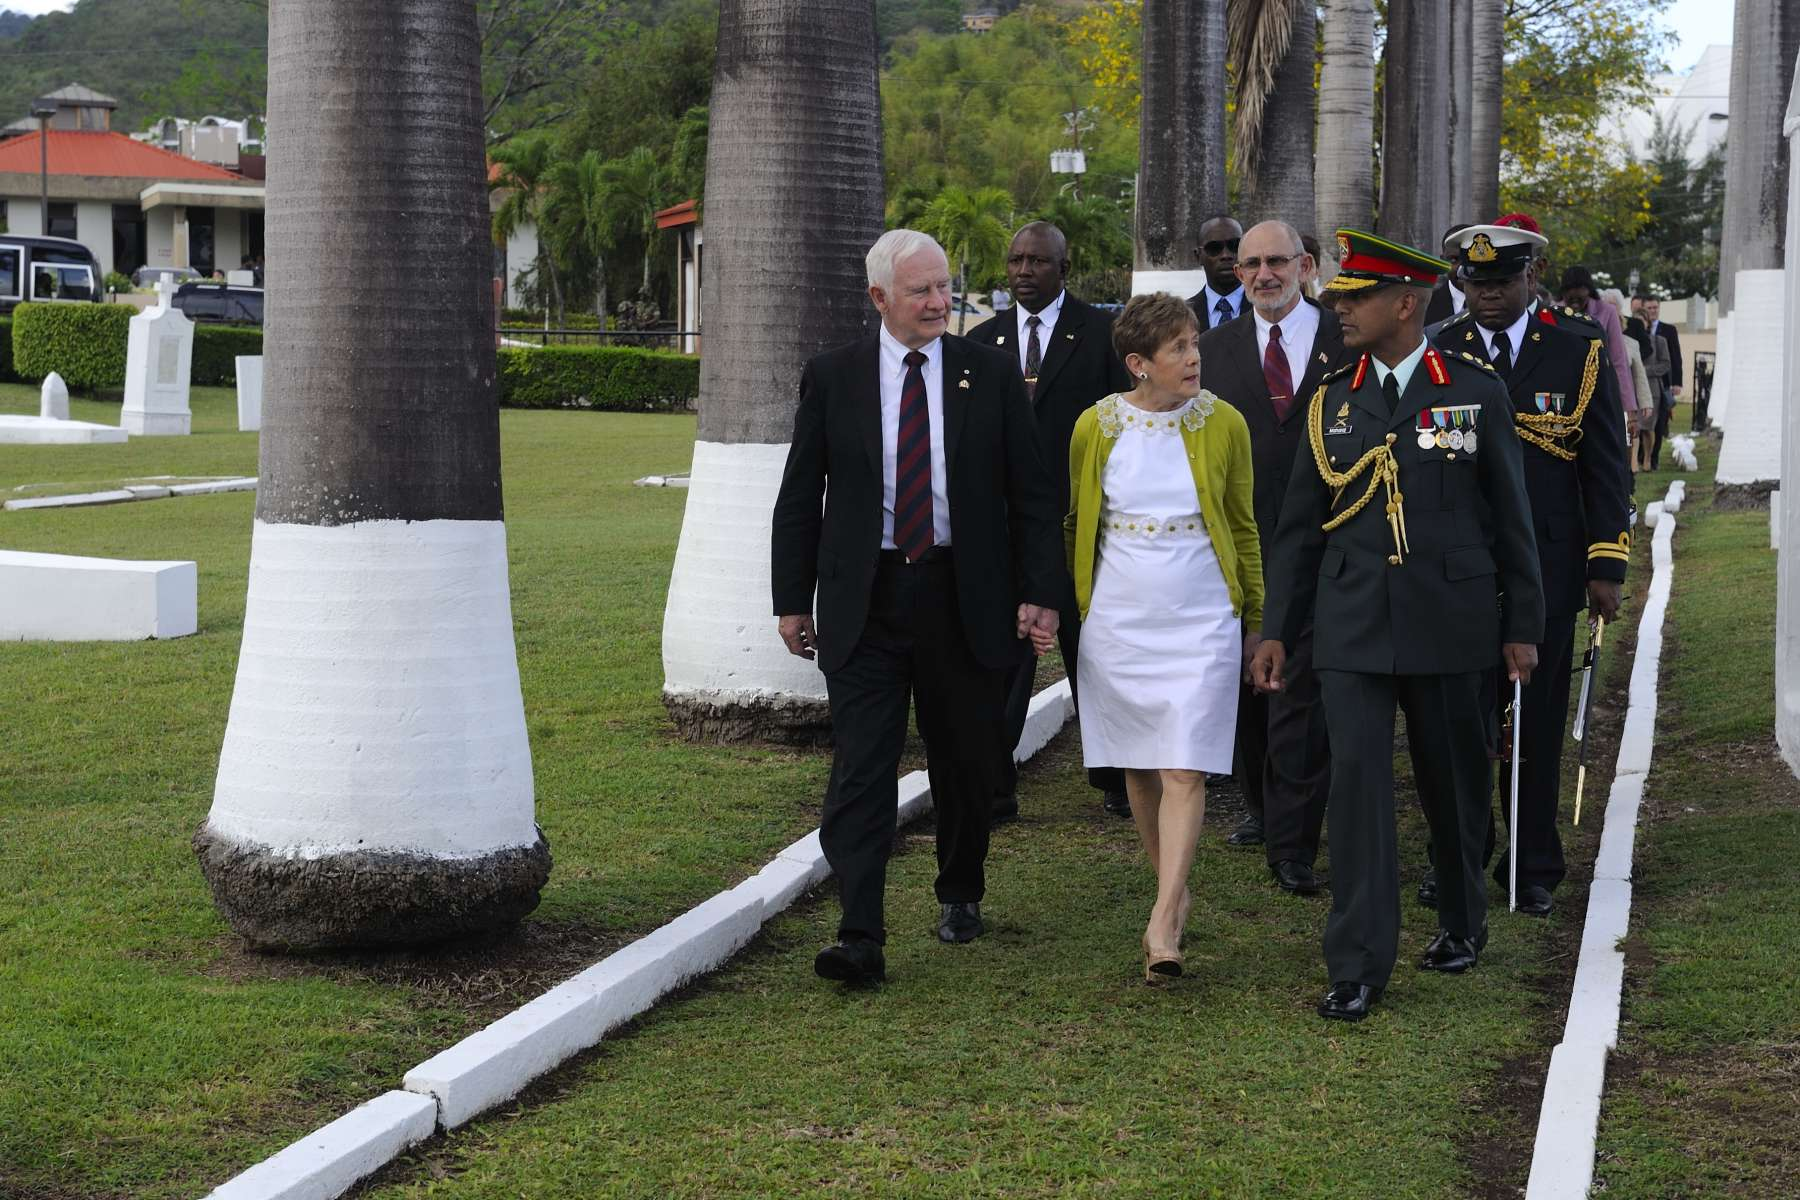 His Excellency, accompanied by his spouse, participated in a wreath-laying ceremony at St. James Commonwealth Military Cemetery.